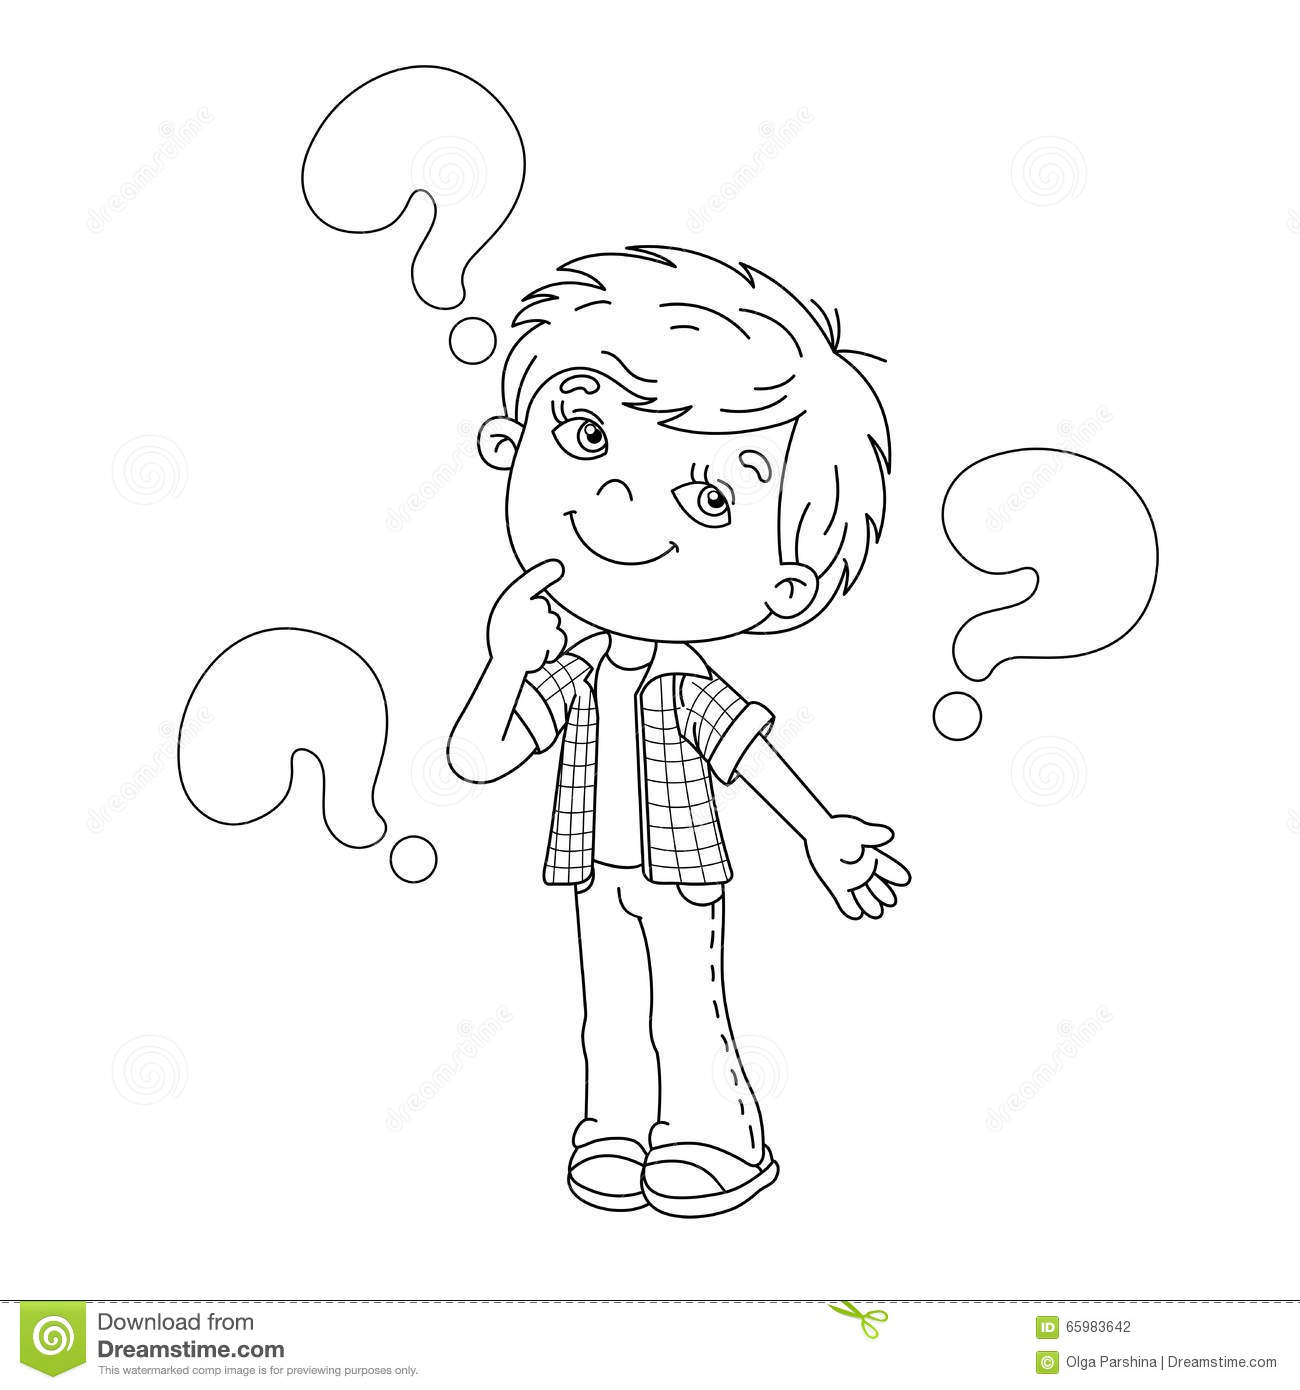 Coloring Page Outline Of Cartoon Boy With The Big